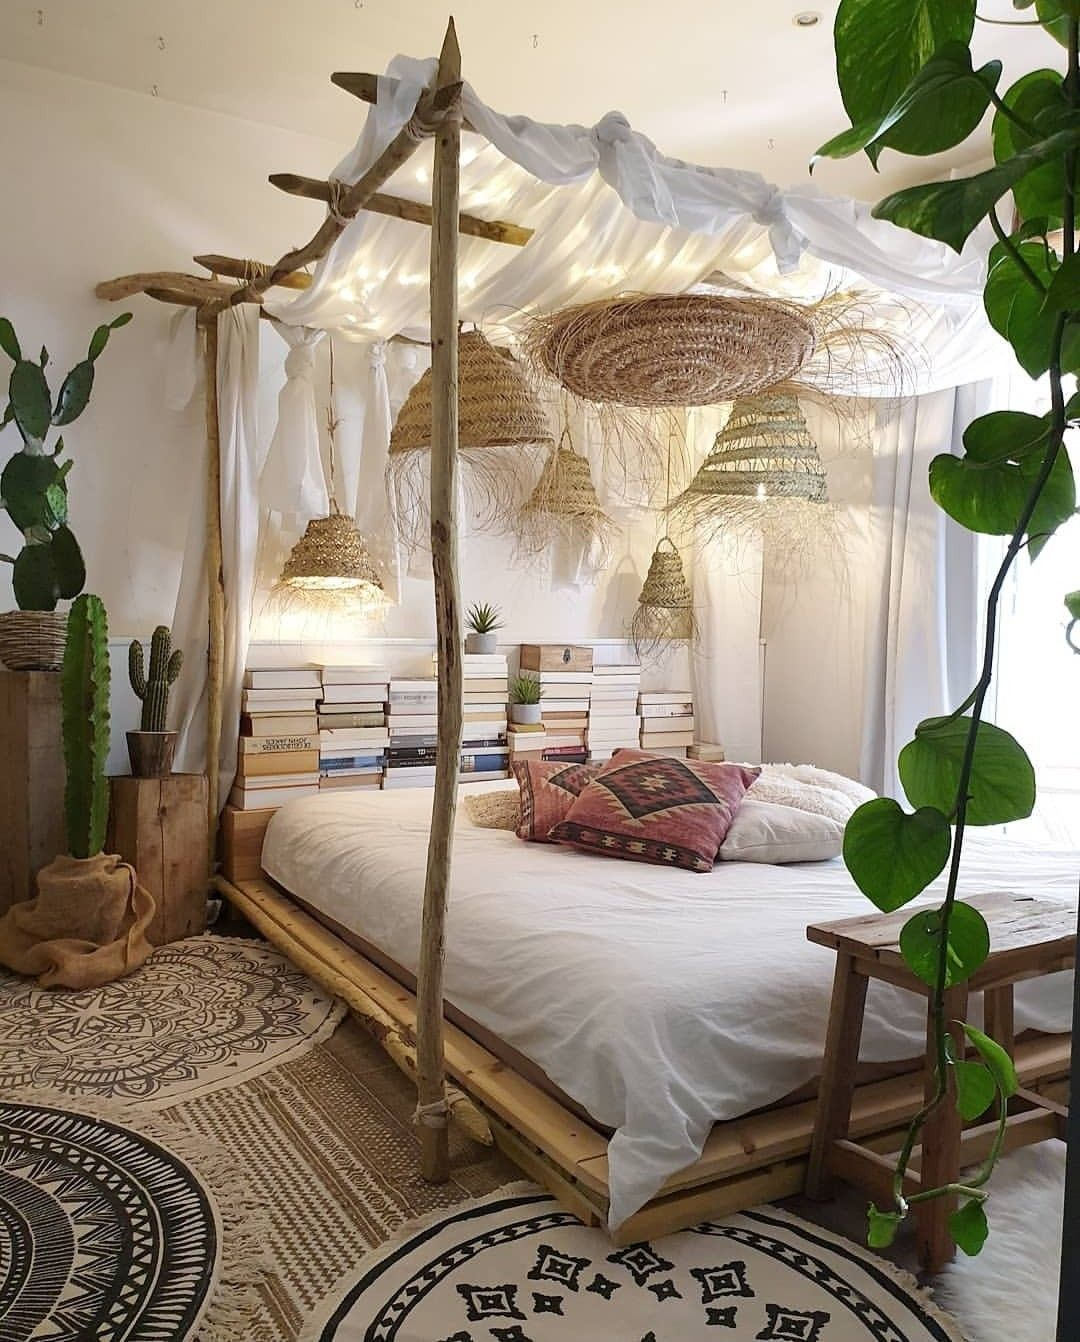 Pin by De La Rouz on Boho Decor  Bohemian bedroom design, Nature